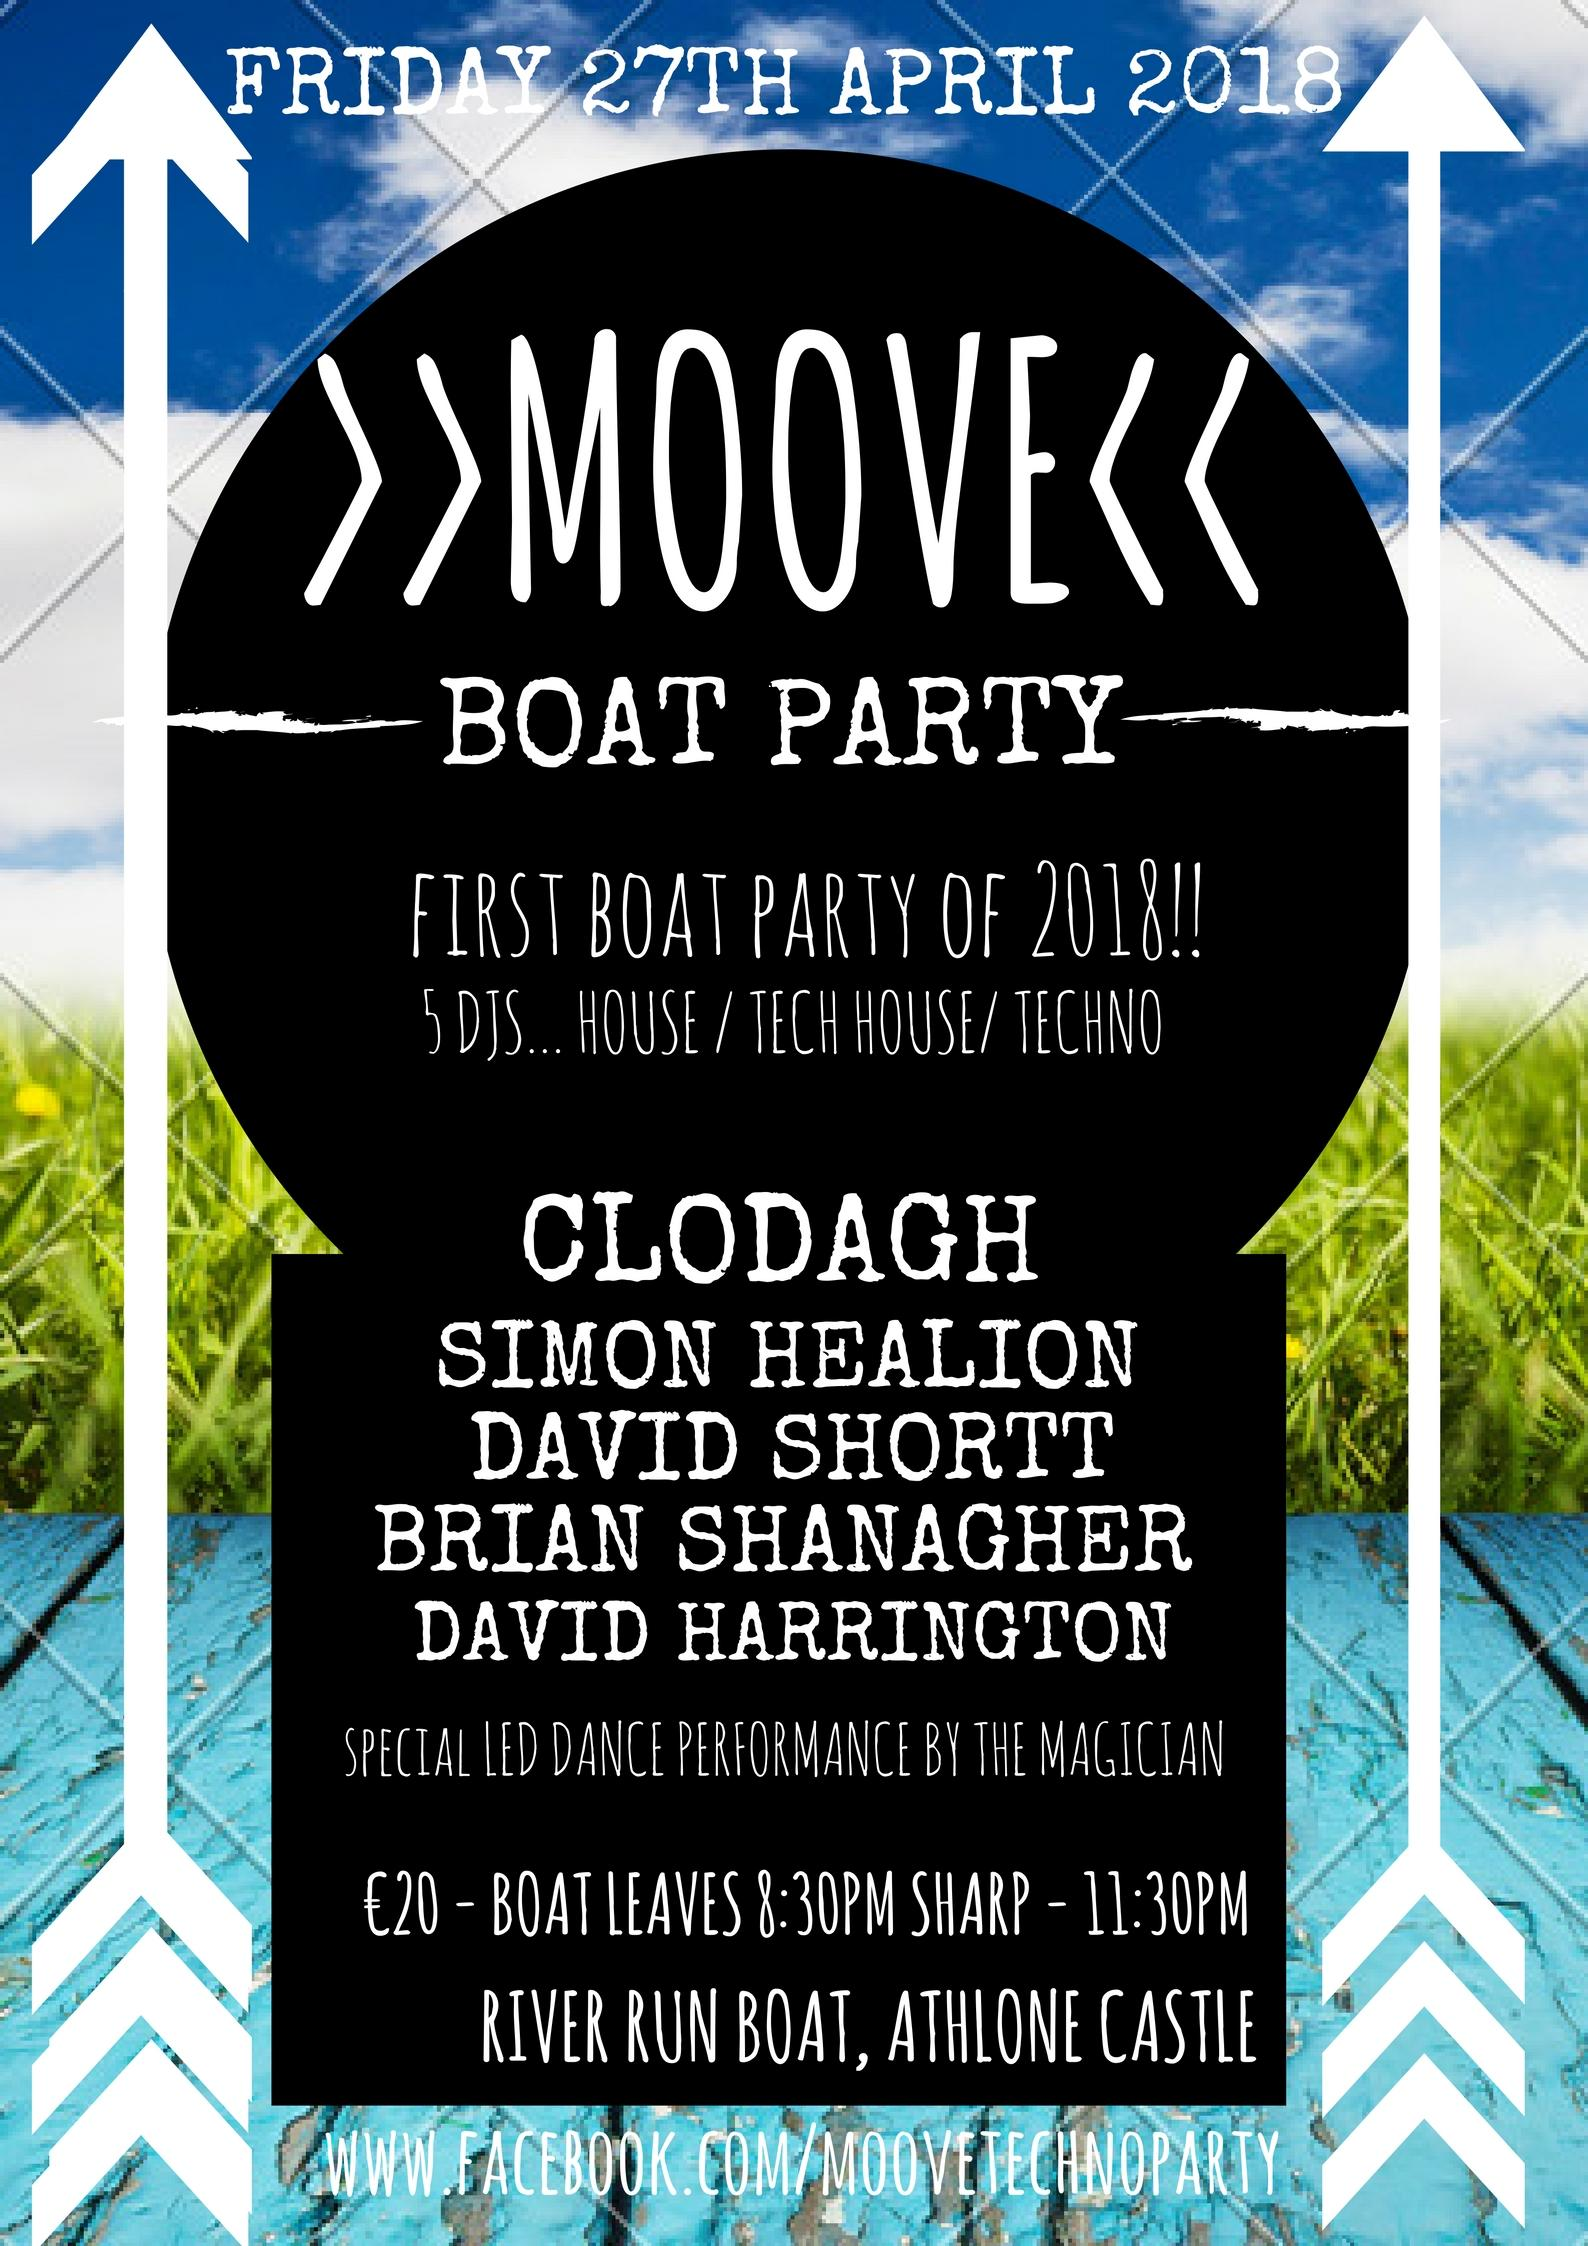 MOOVE Boat Party